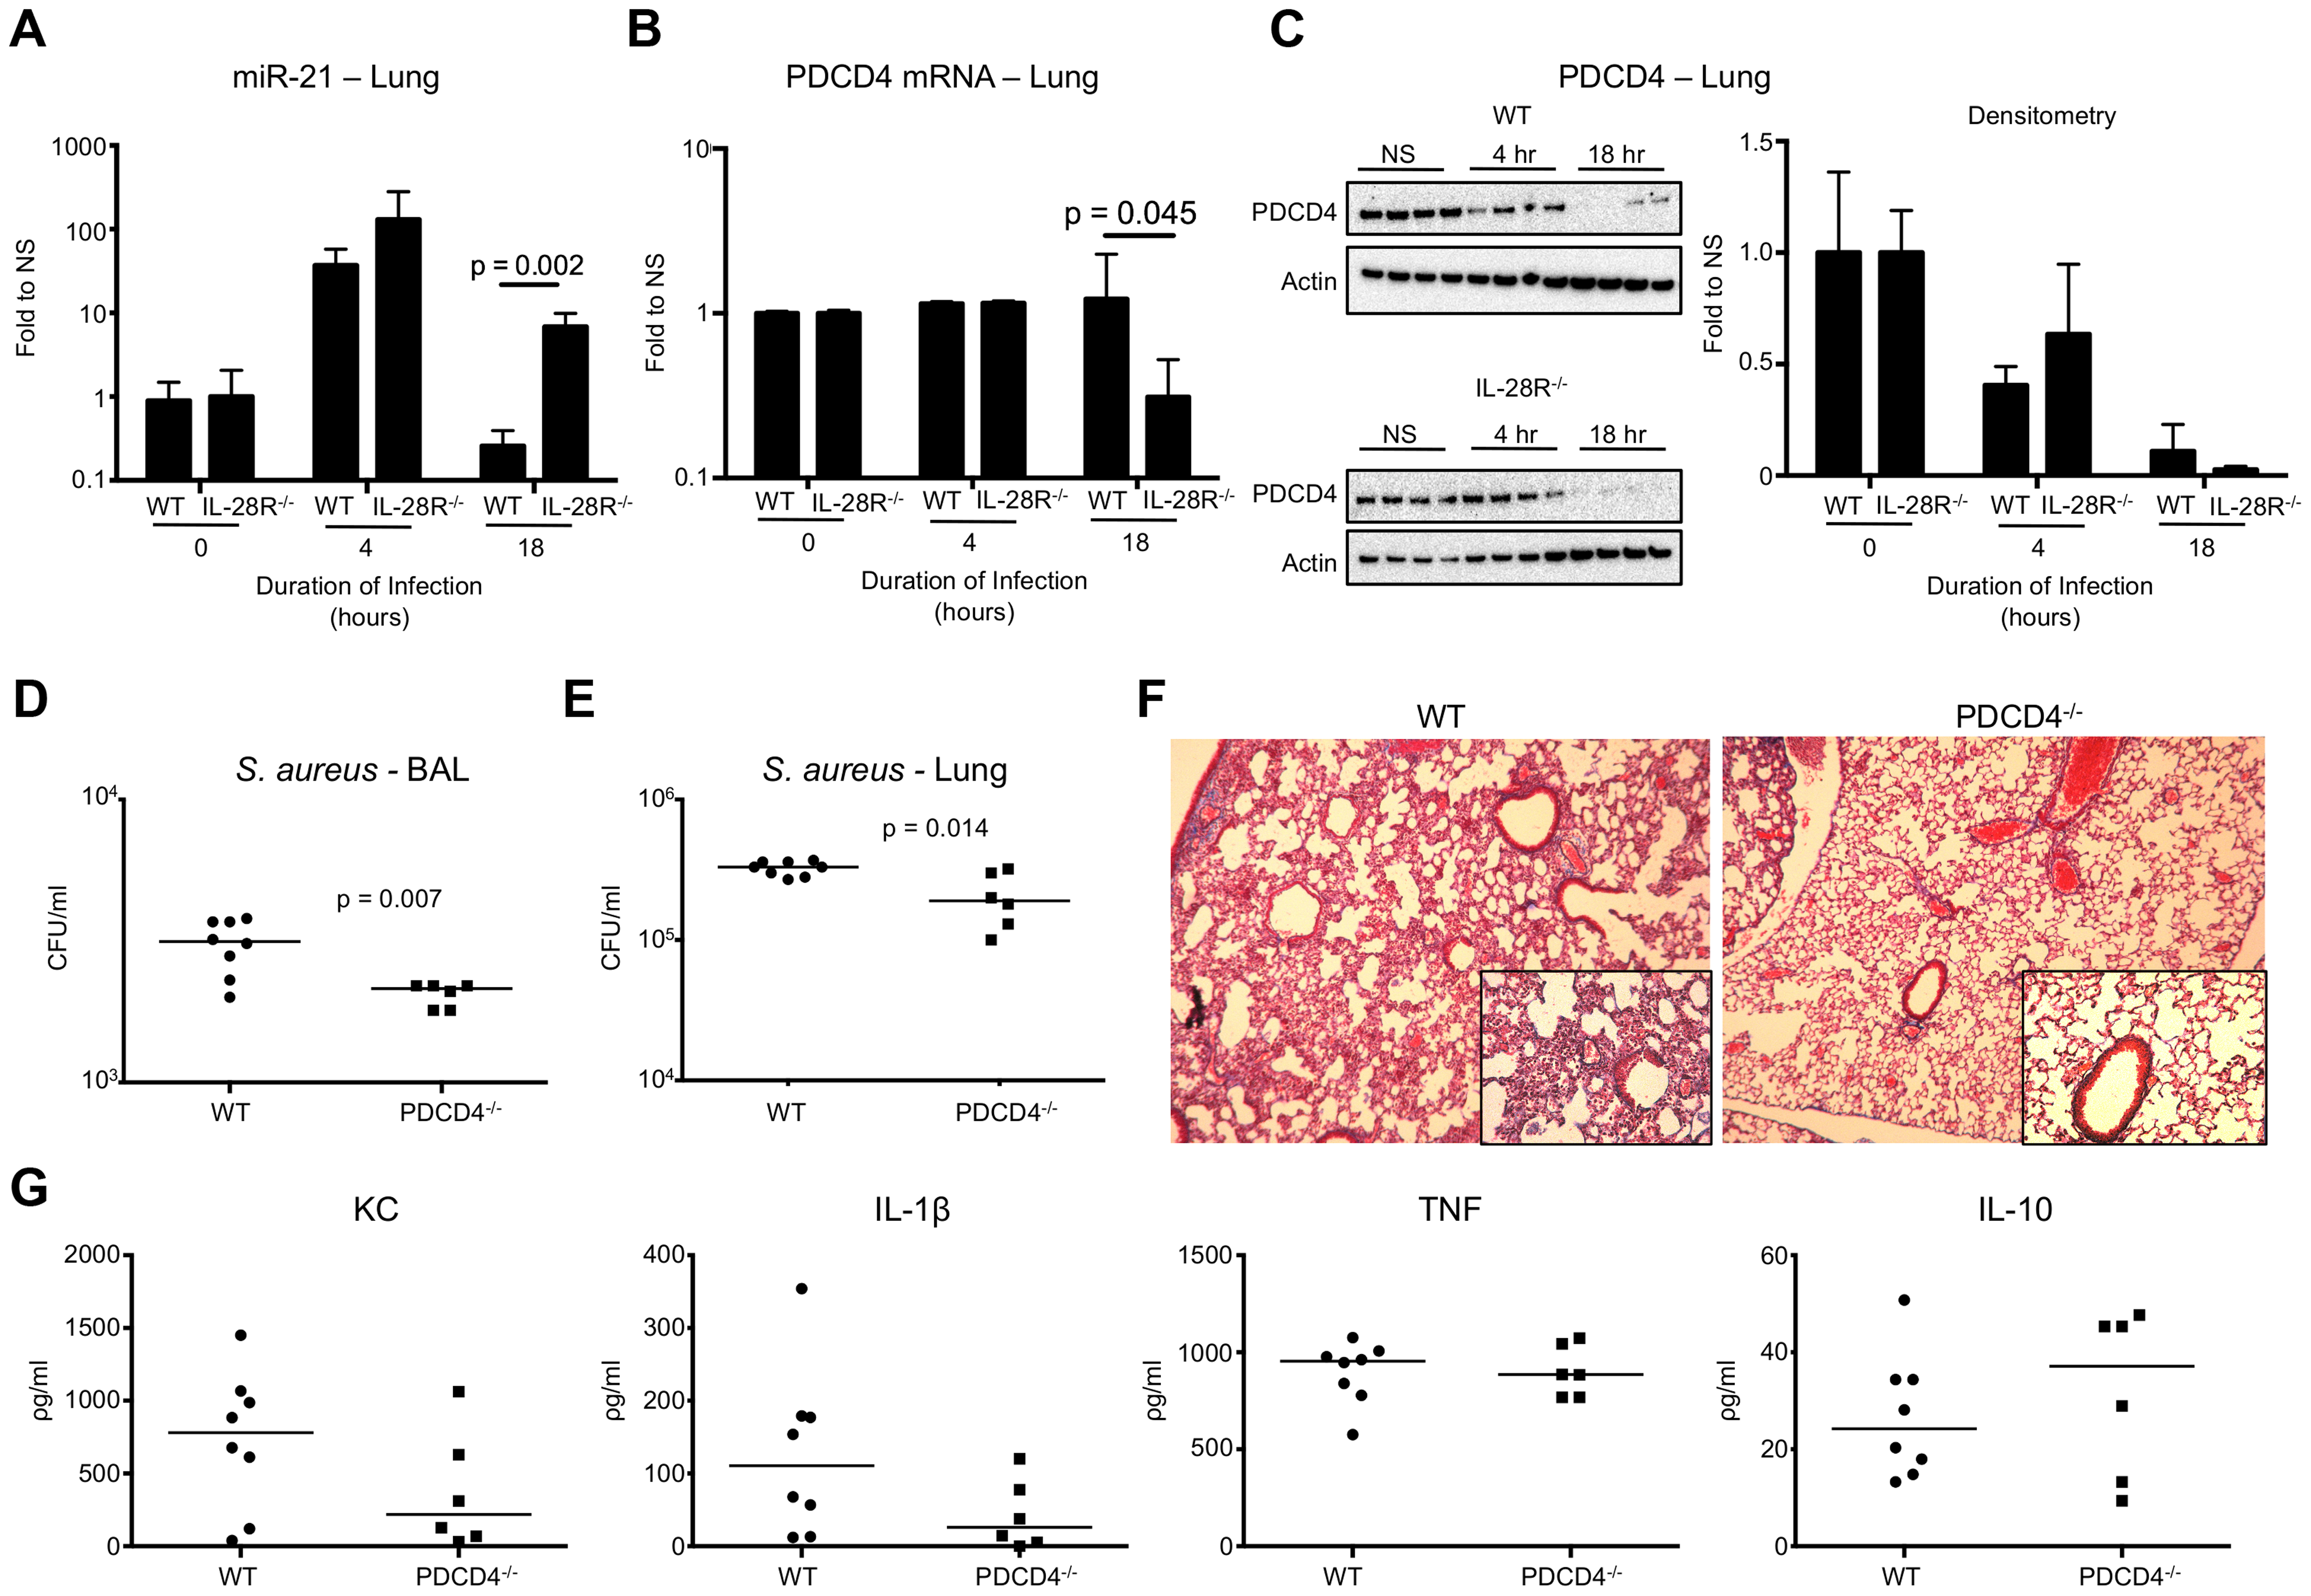 IFNλ regulates PDCD4 in vivo. (A) qRT-PCR analysis of miR-21 in the lungs of WT and IL-28R<sup>−/−</sup> mice following infection with USA300, µ ± SD.